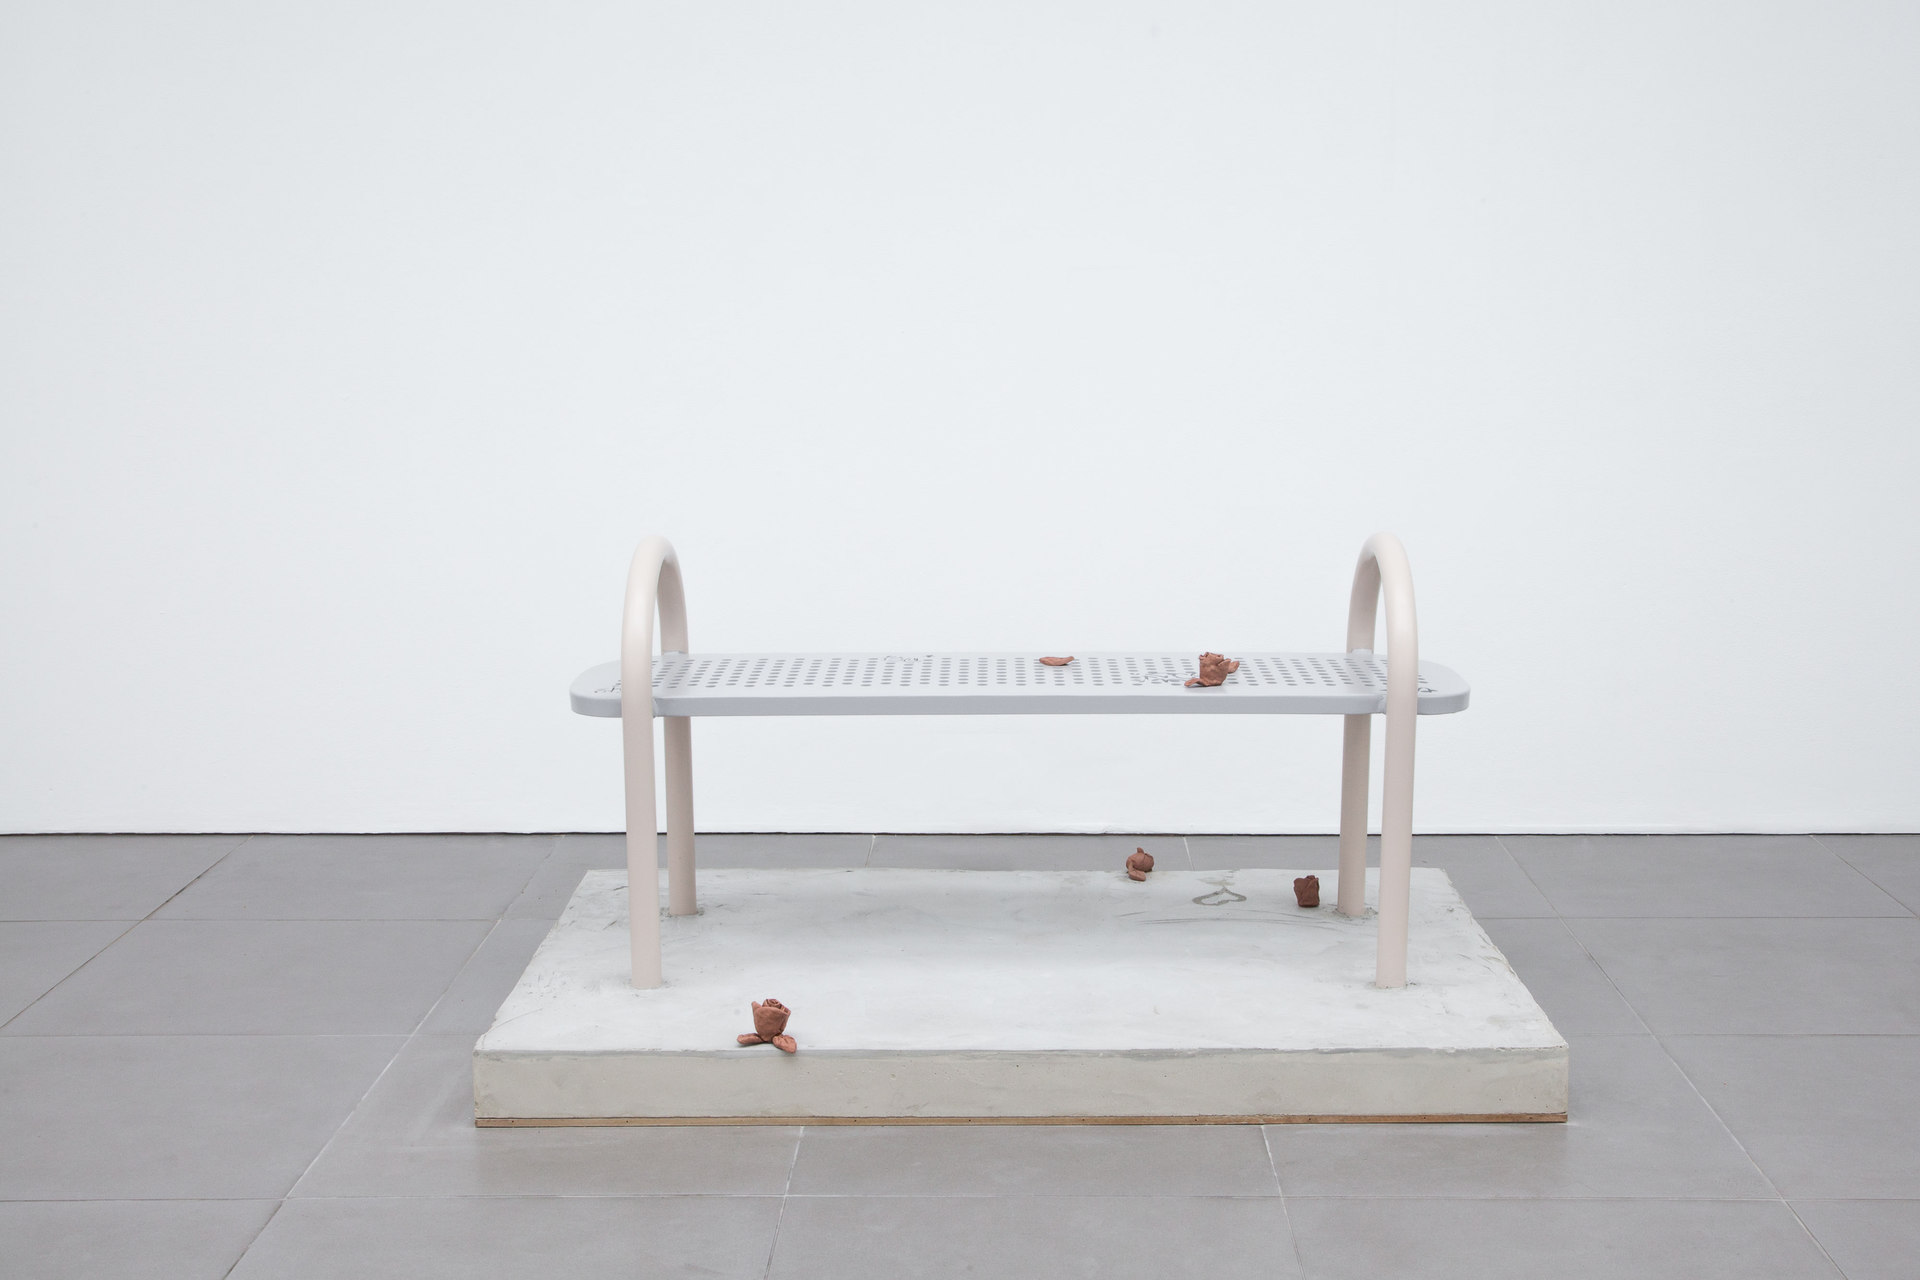 Pablo Jones-Soler, Benches, 2015, mixed media, 150 x 90 x 76 cm, Cell Project Space